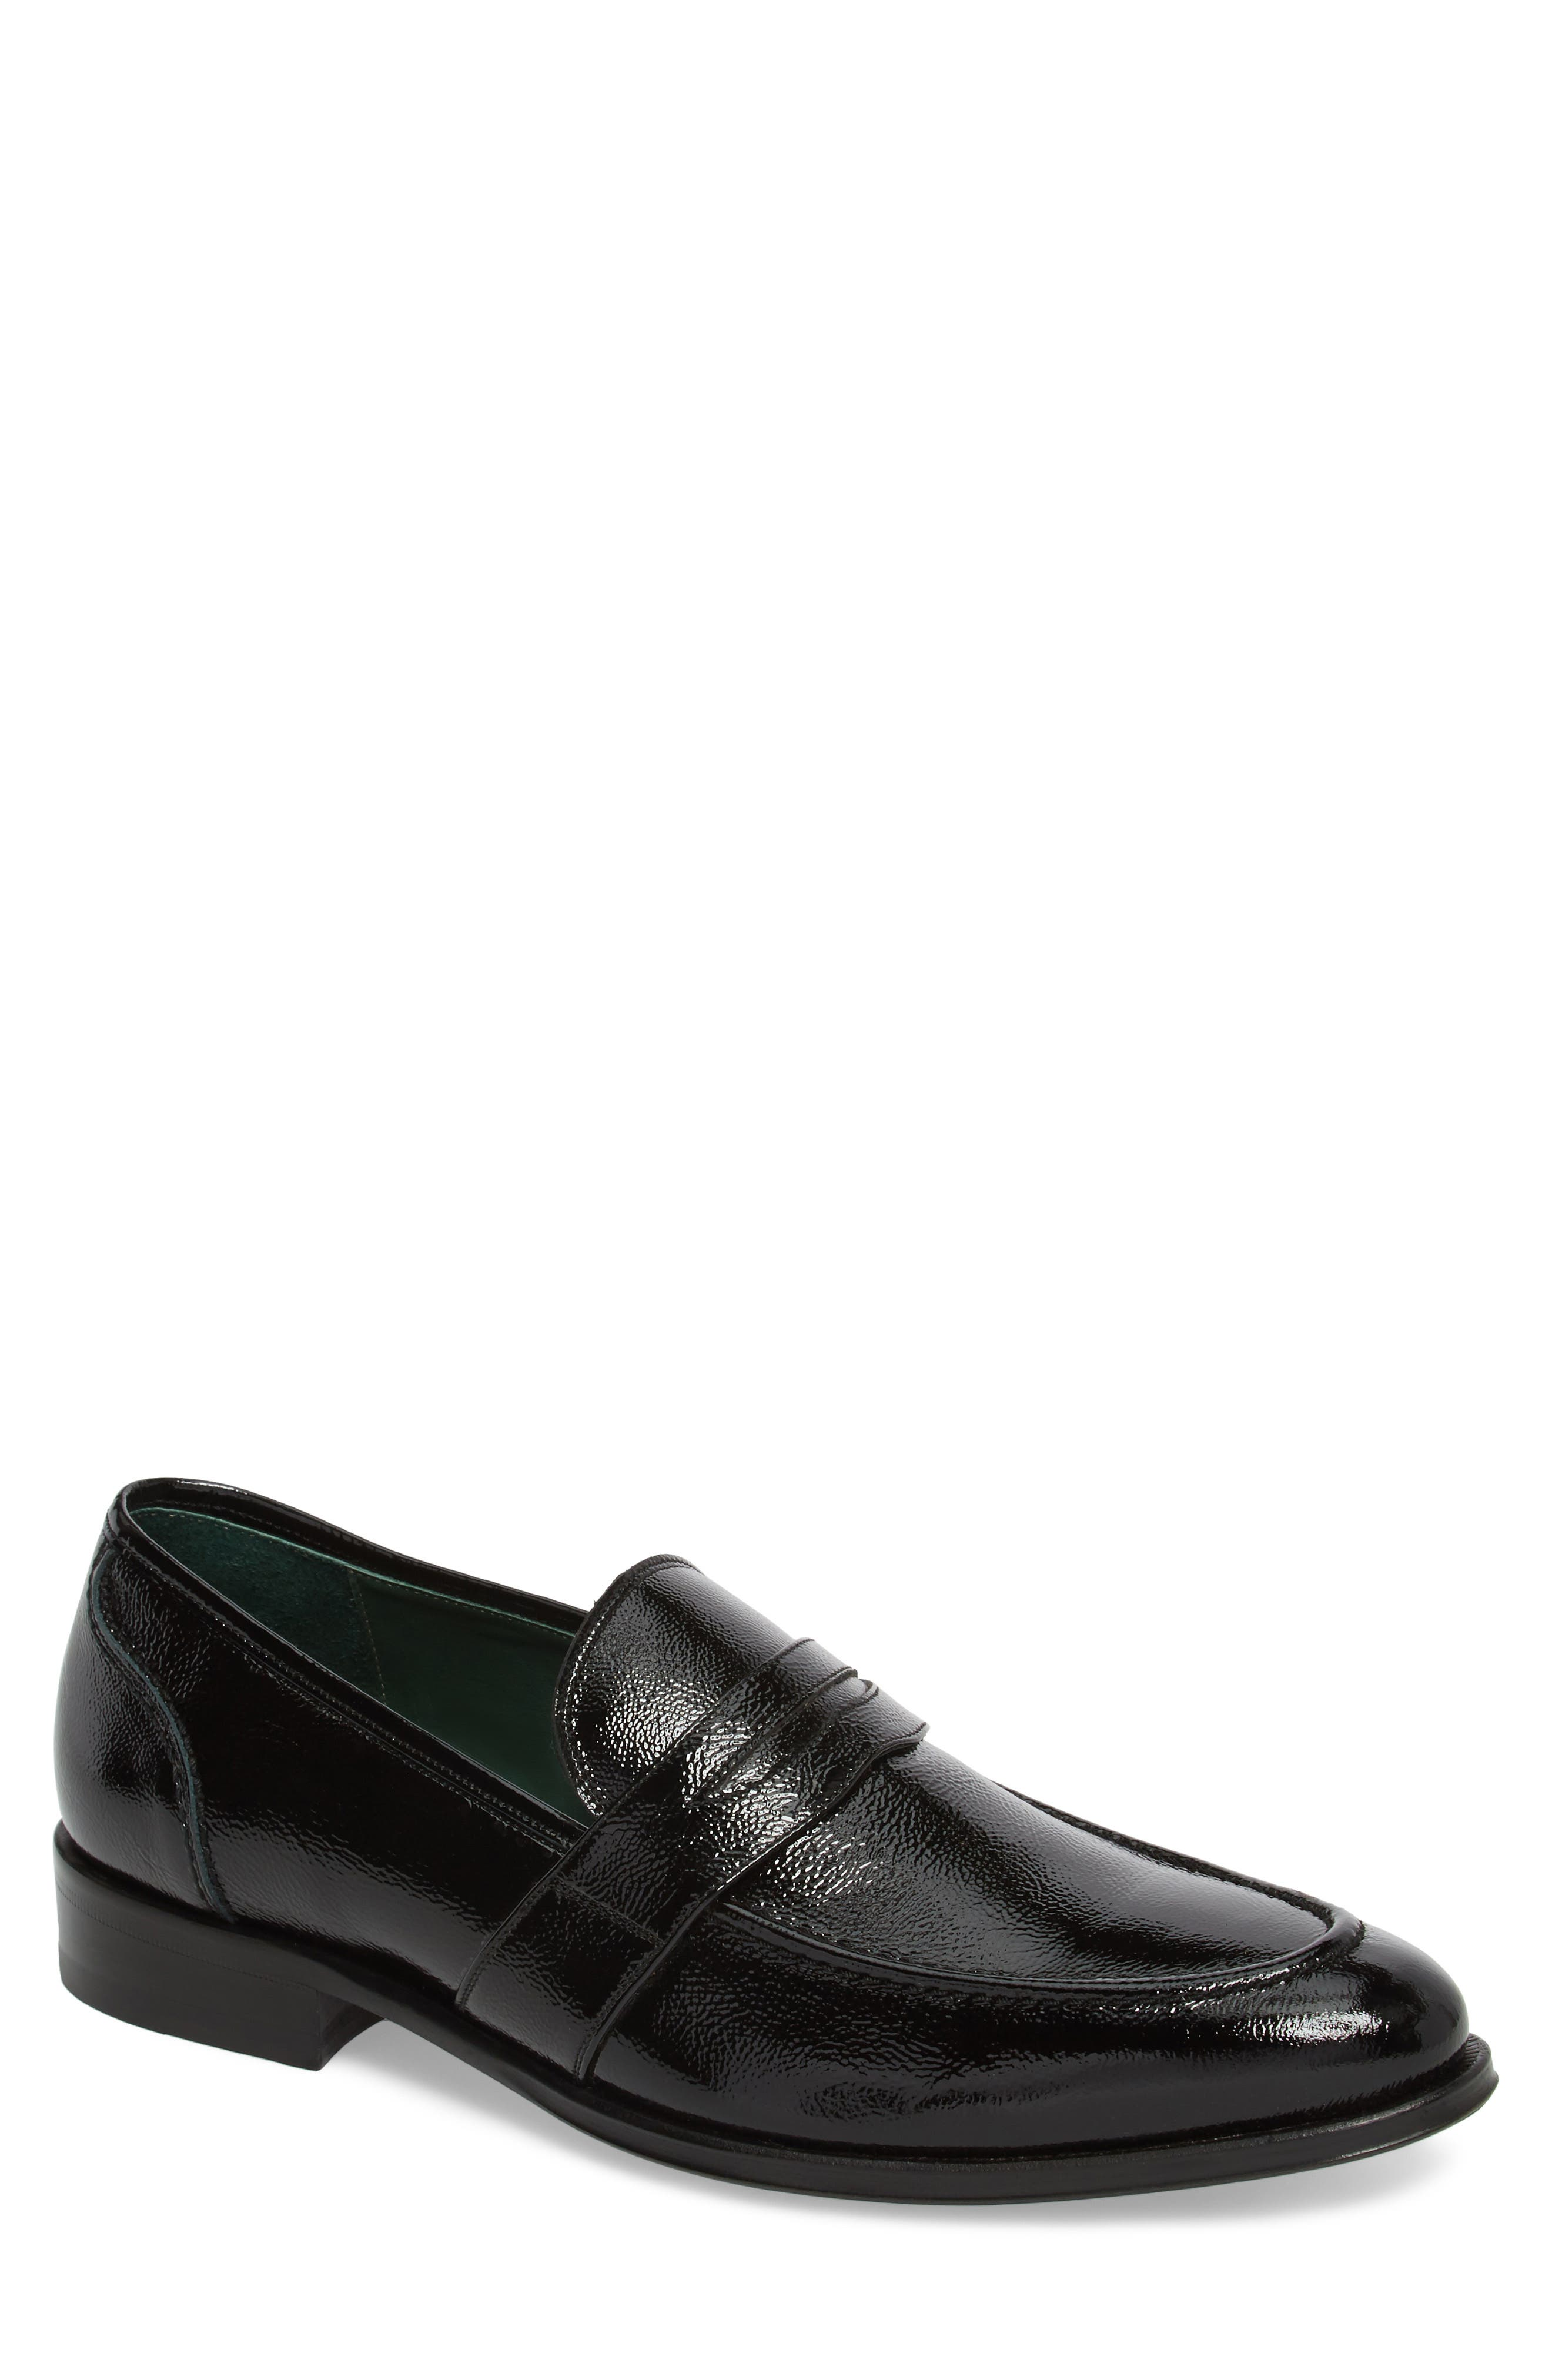 Argos Penny Loafer,                             Main thumbnail 1, color,                             Black Patent Leather